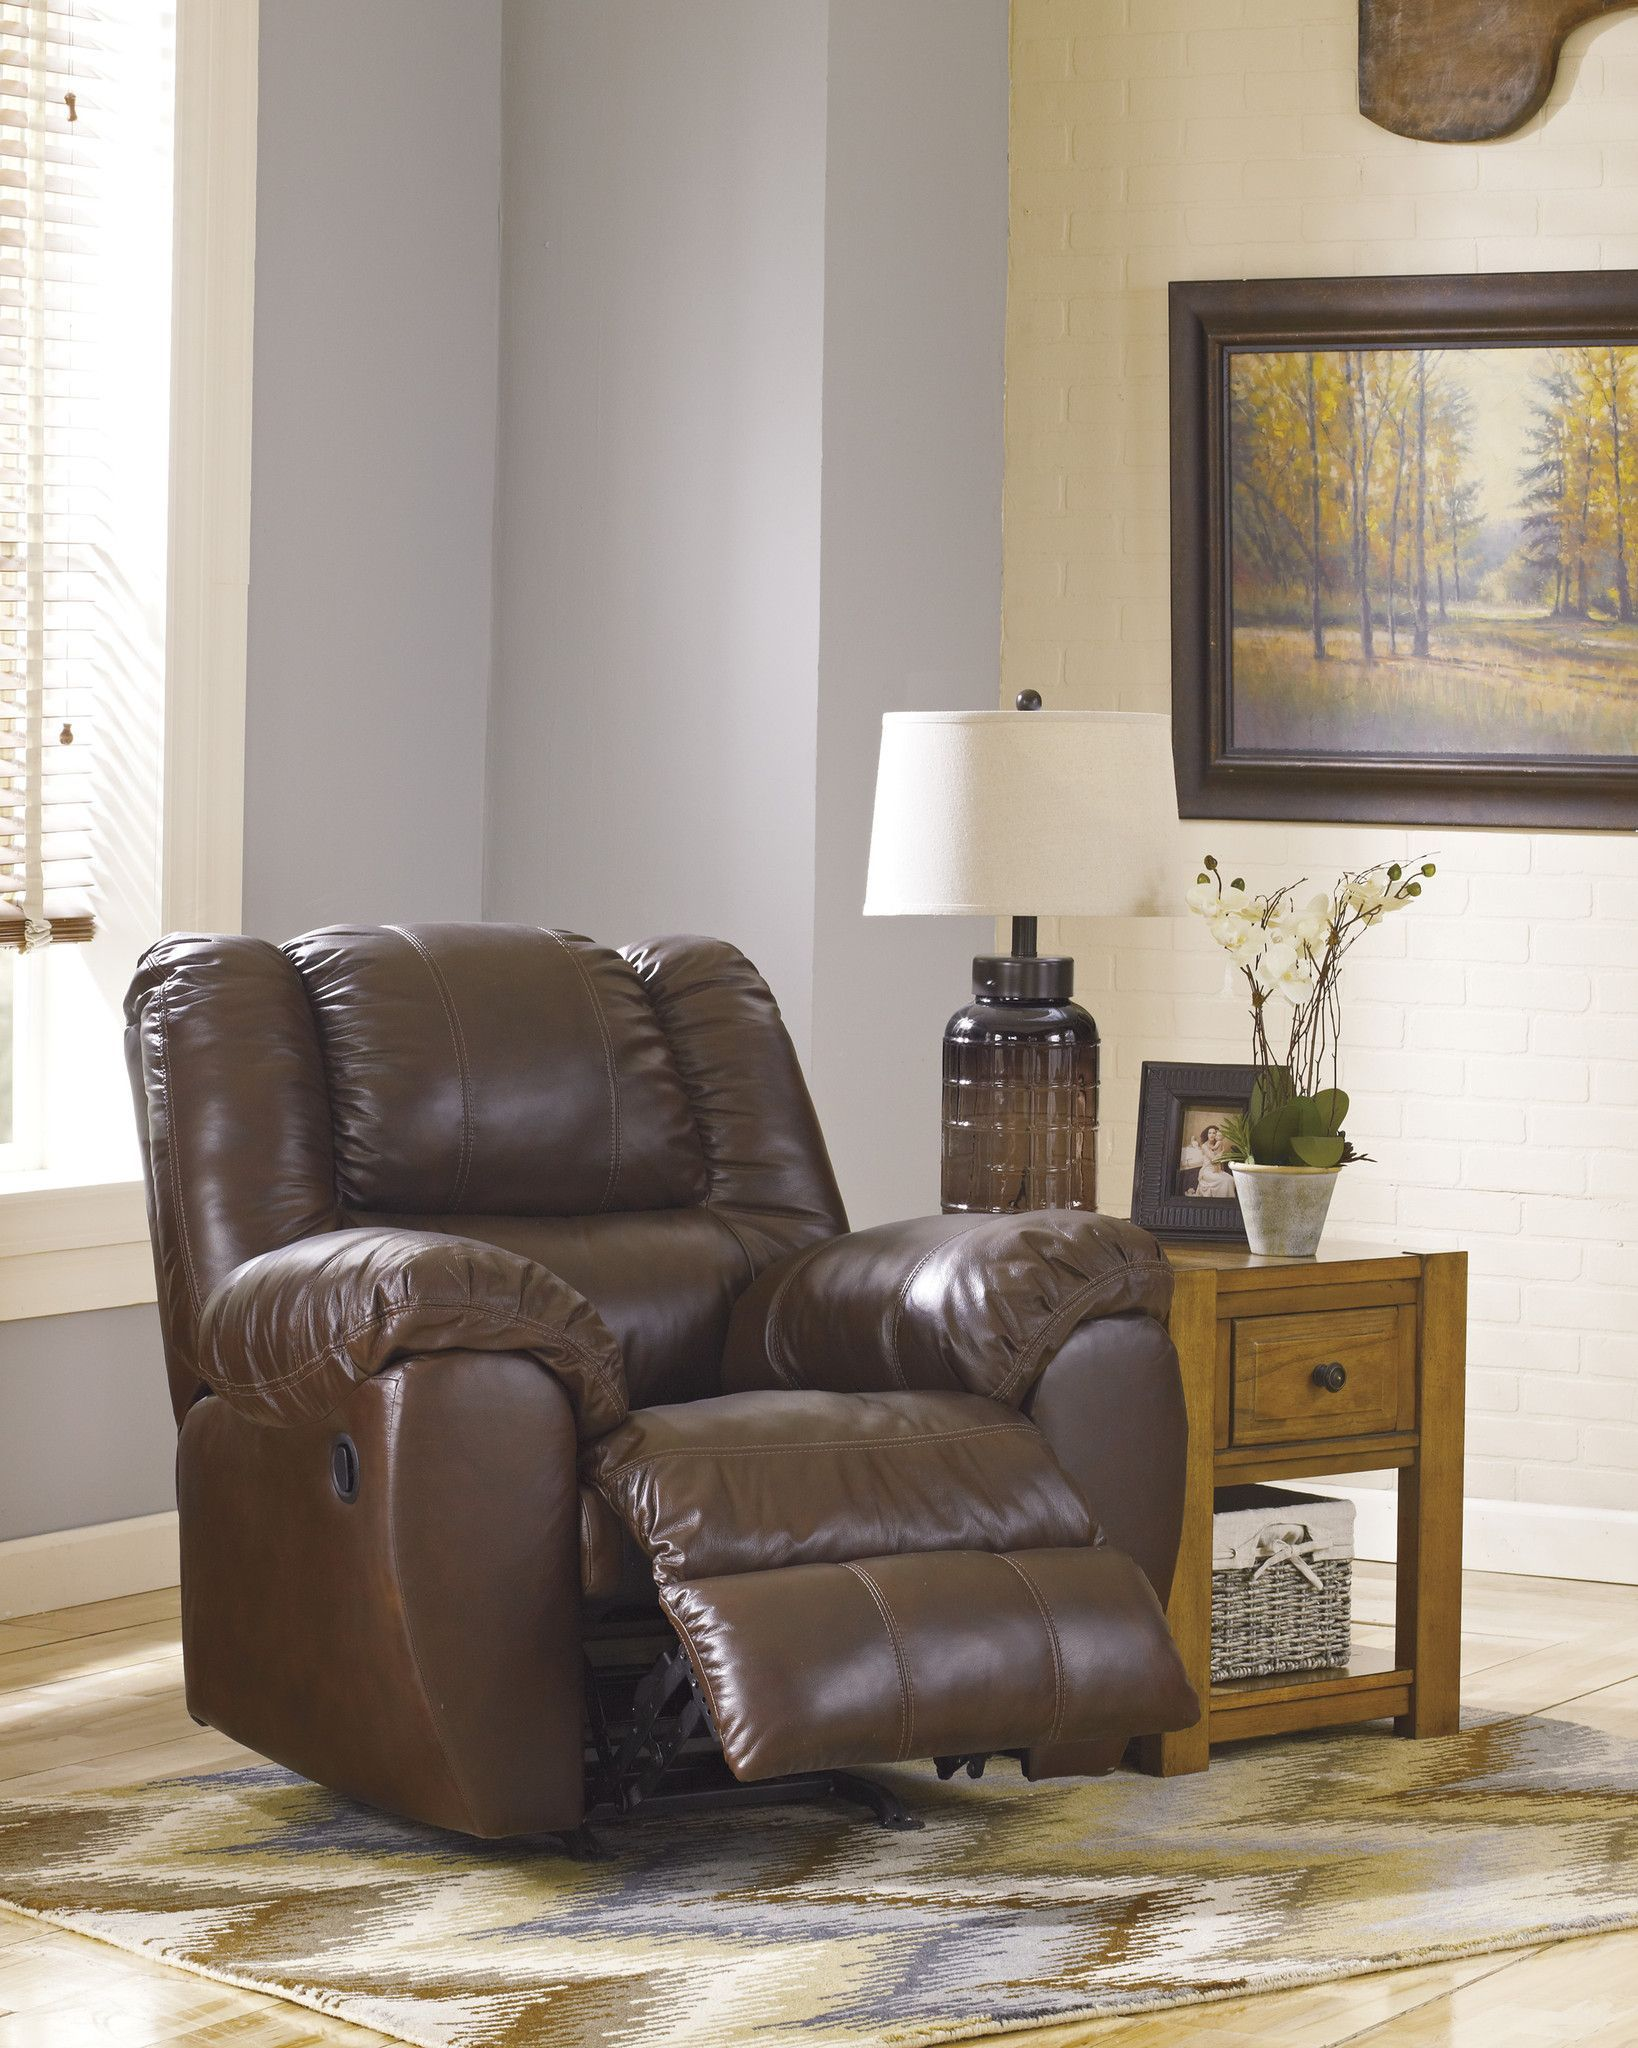 McAdams Power Rocker Recliner by Ashley Furniture at Kensington